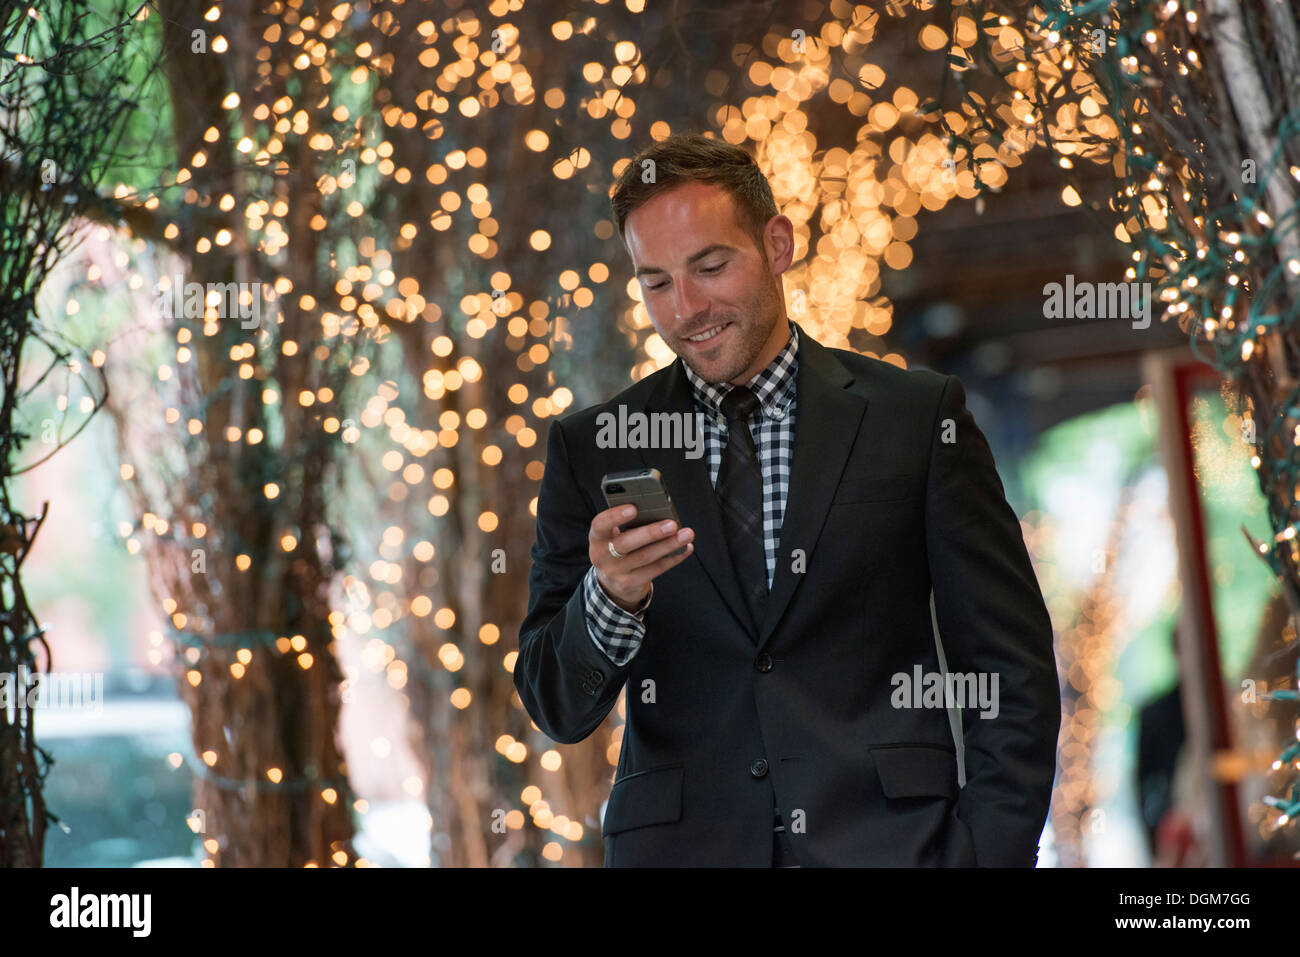 Business people. A man checking his phone, walking under a pergola lit with fairy lights. - Stock Image